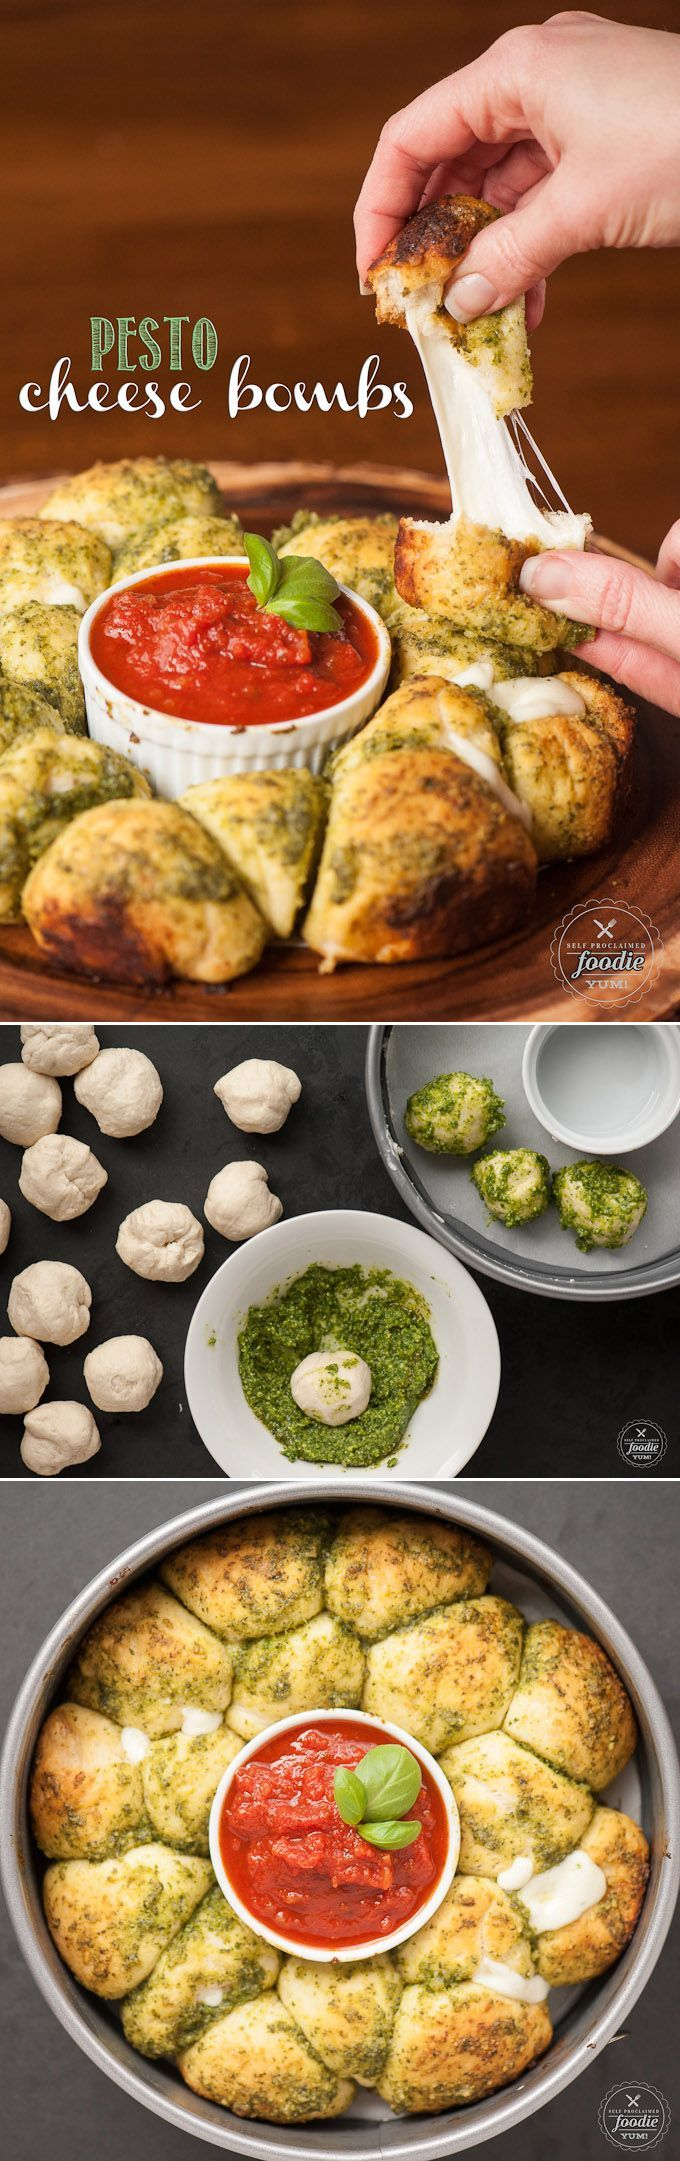 Ooey gooey melty Pesto Cheese Bombs with marinara sauce are super easy to make and will please any crowd. Make this appetizer for your next game day party! (Minutes Bread)